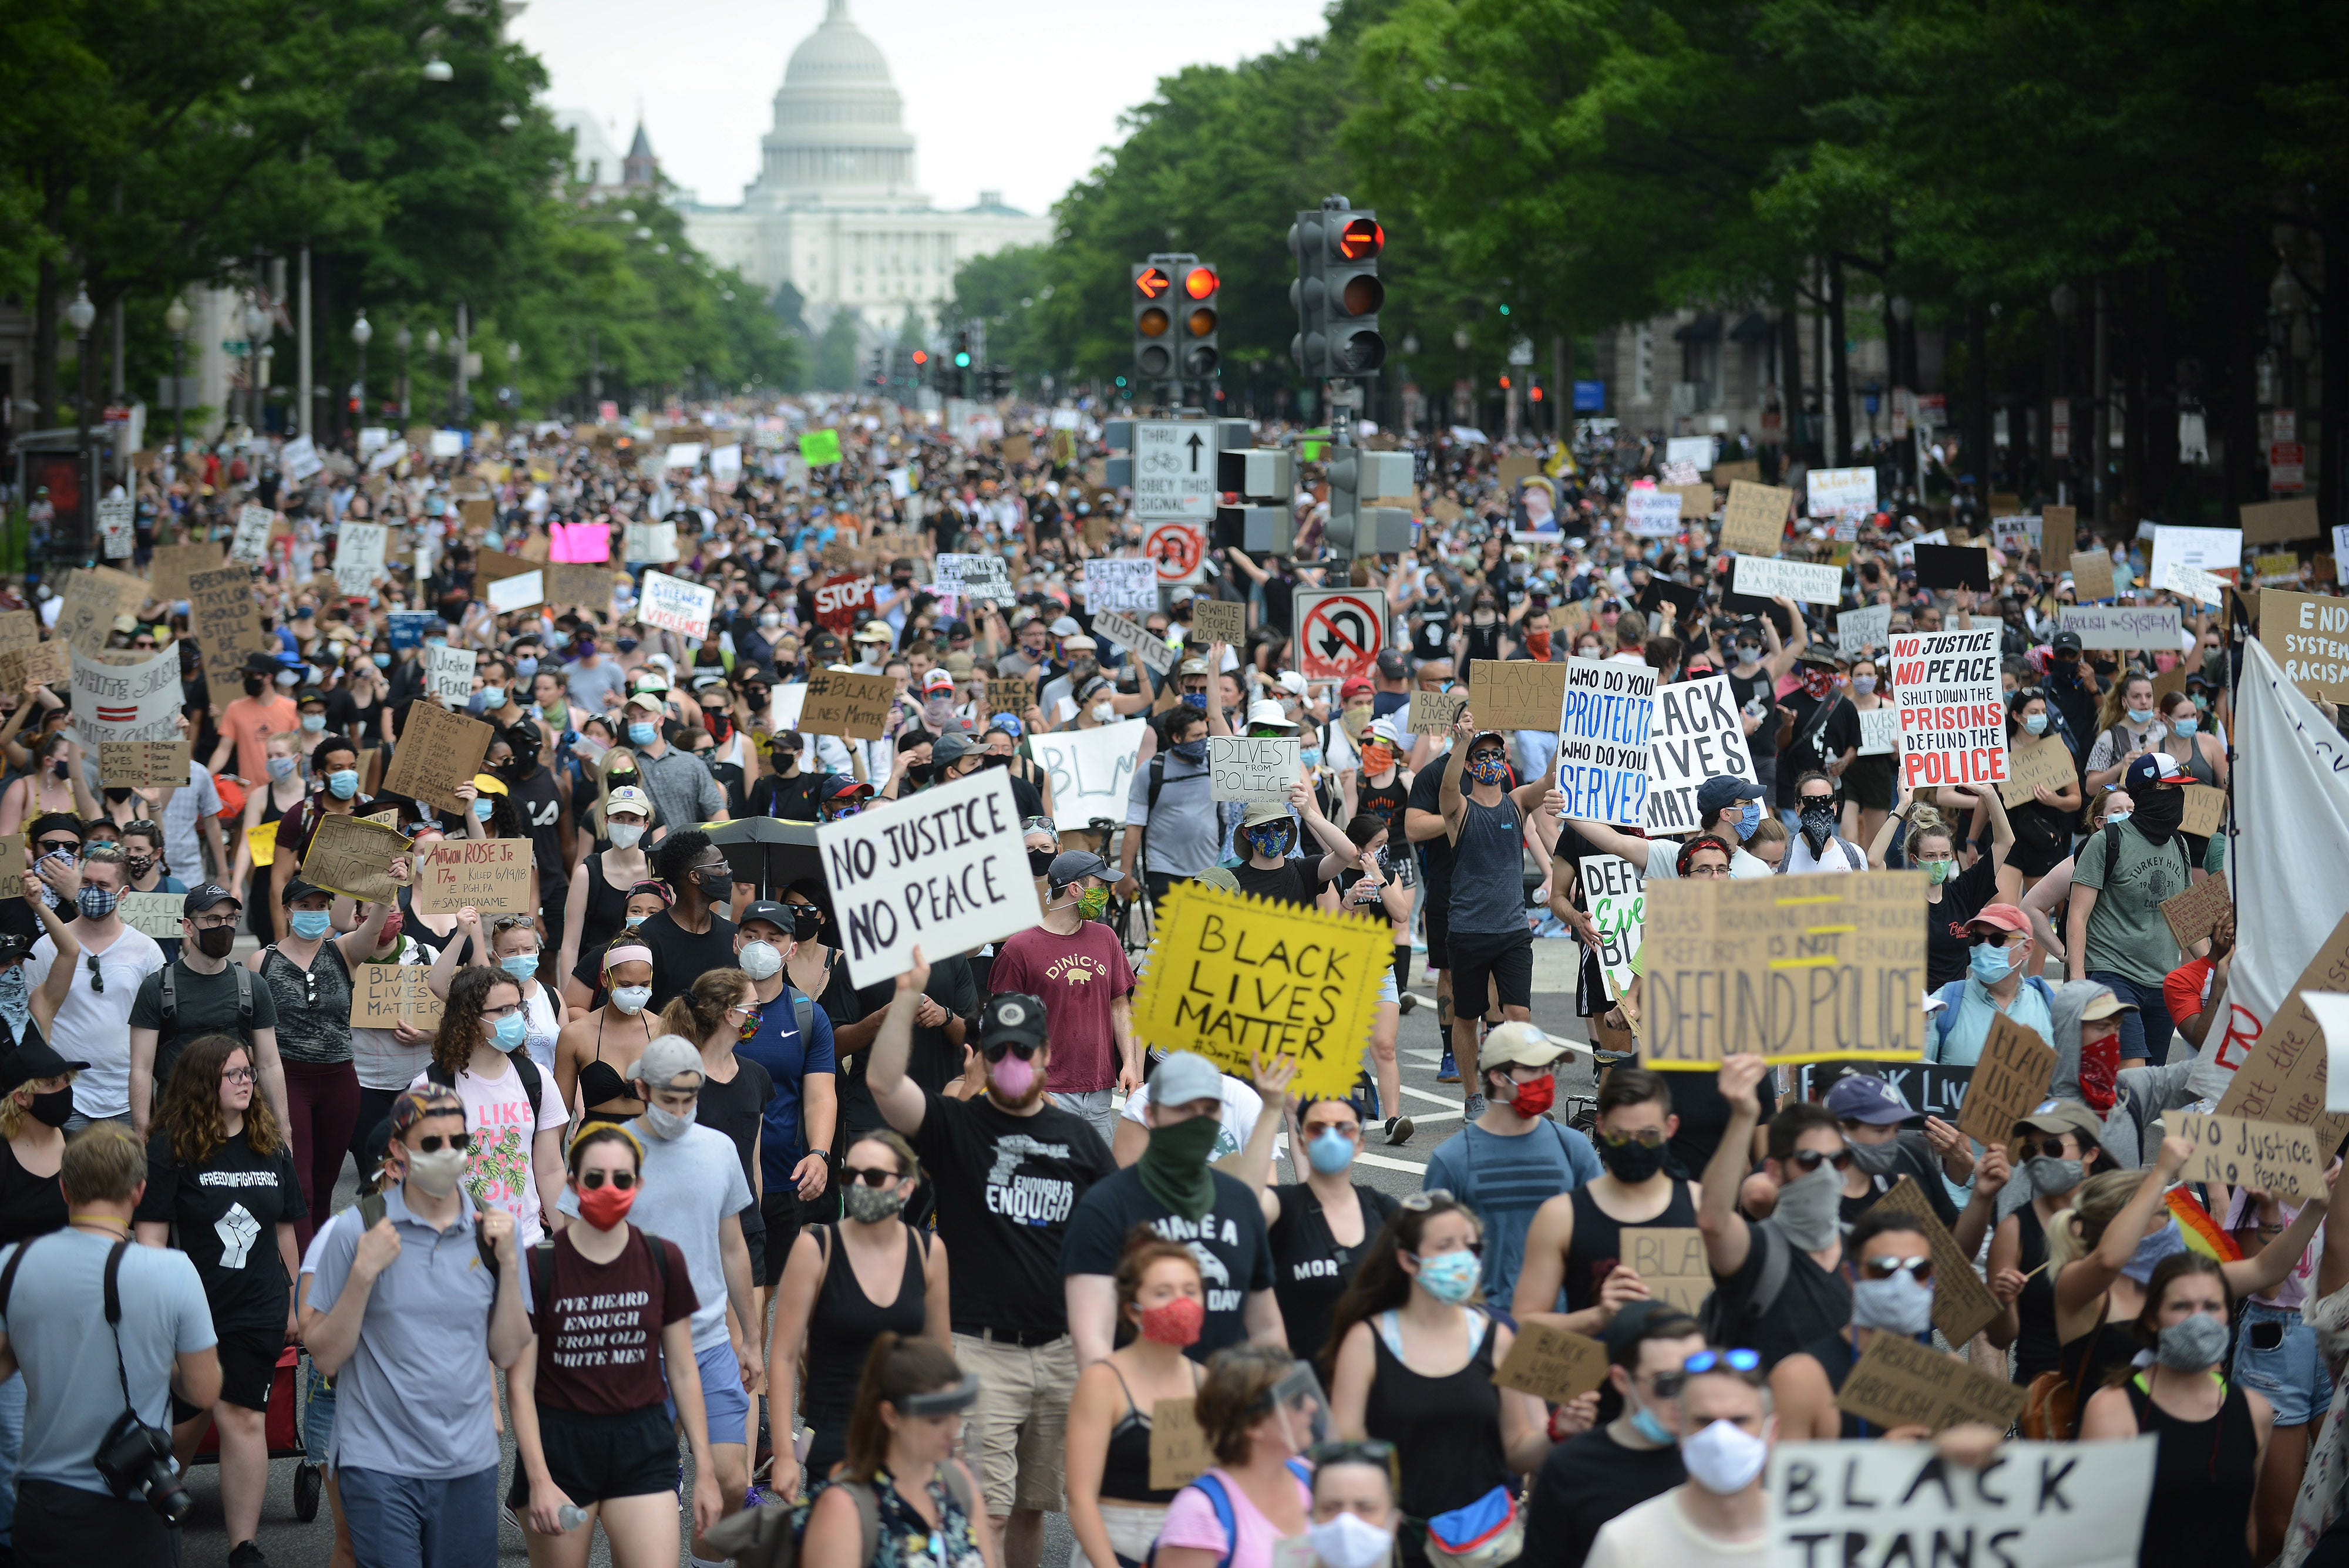 Protests have resulted in more police transparency and accountability. But not for the feds 2